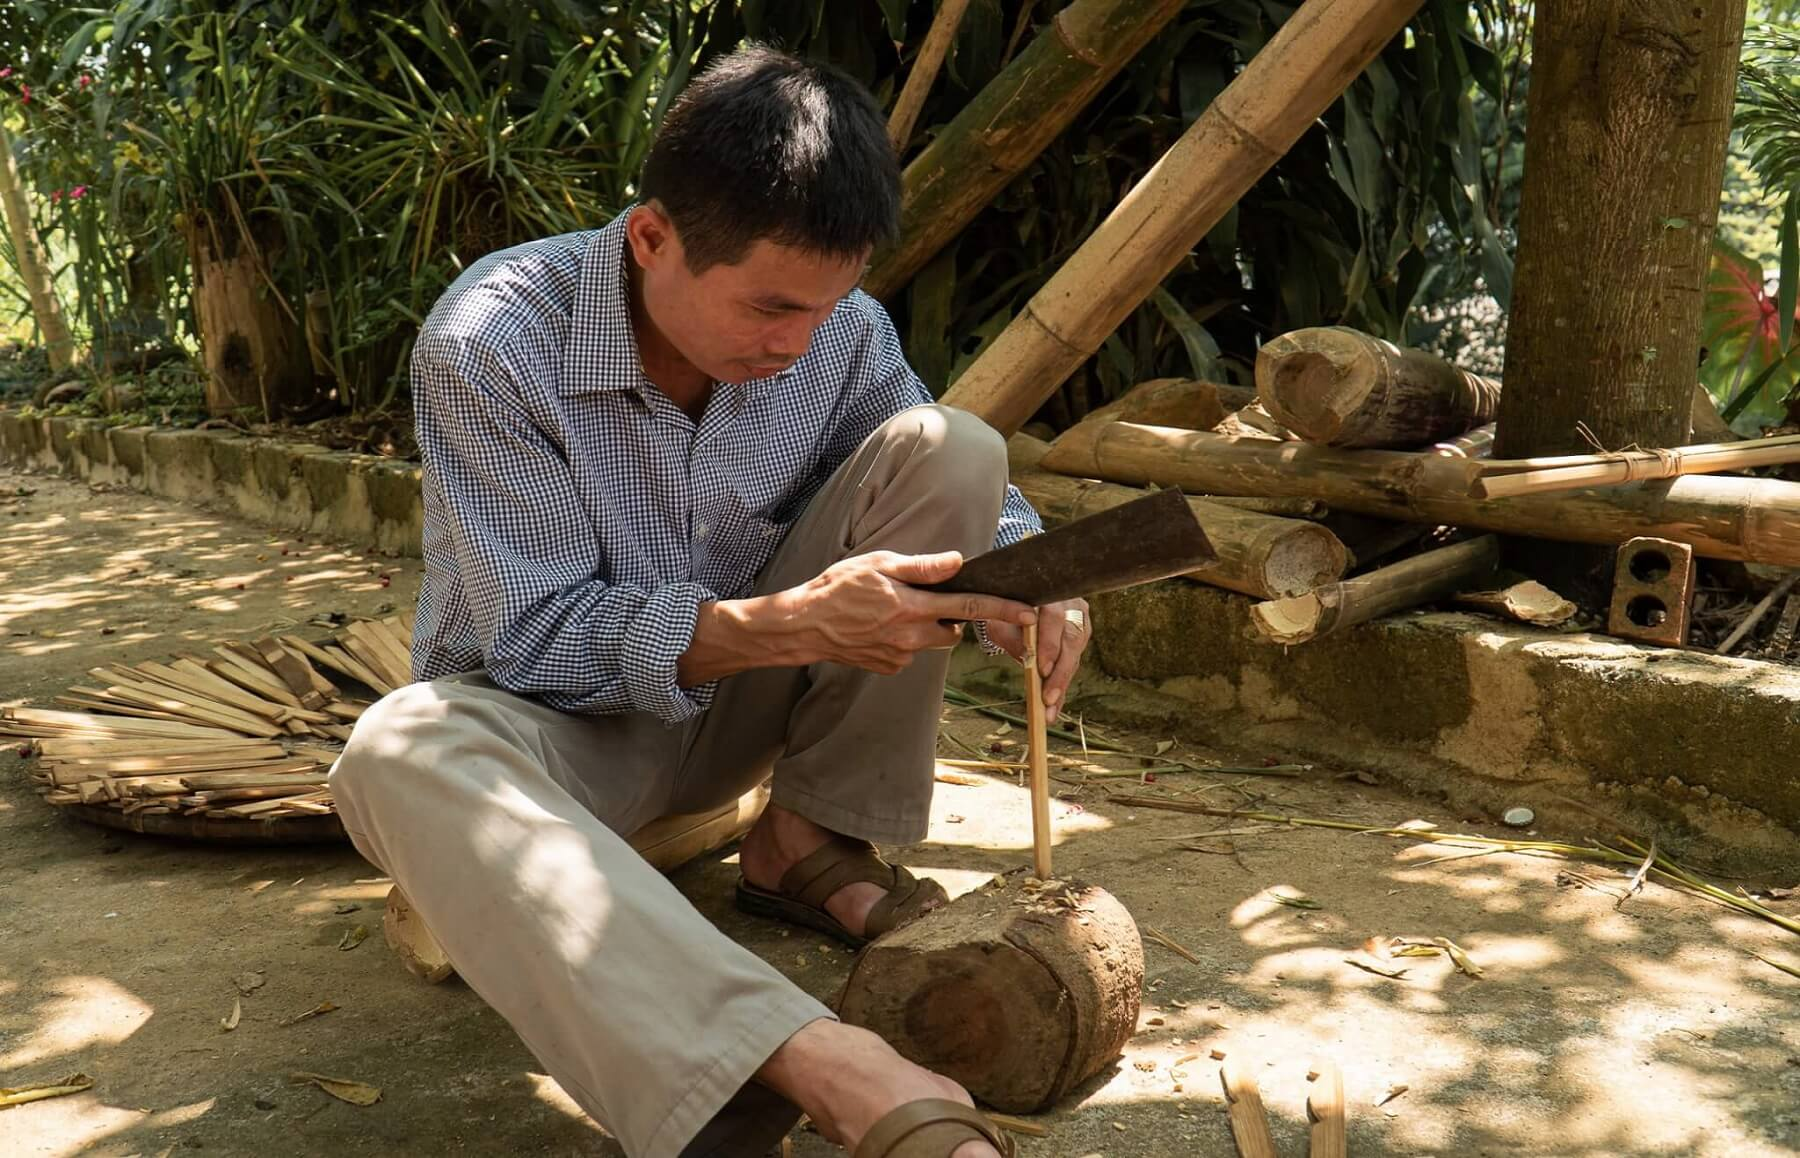 JC008-Local-villagers-working-on-the-cutlery-scaled